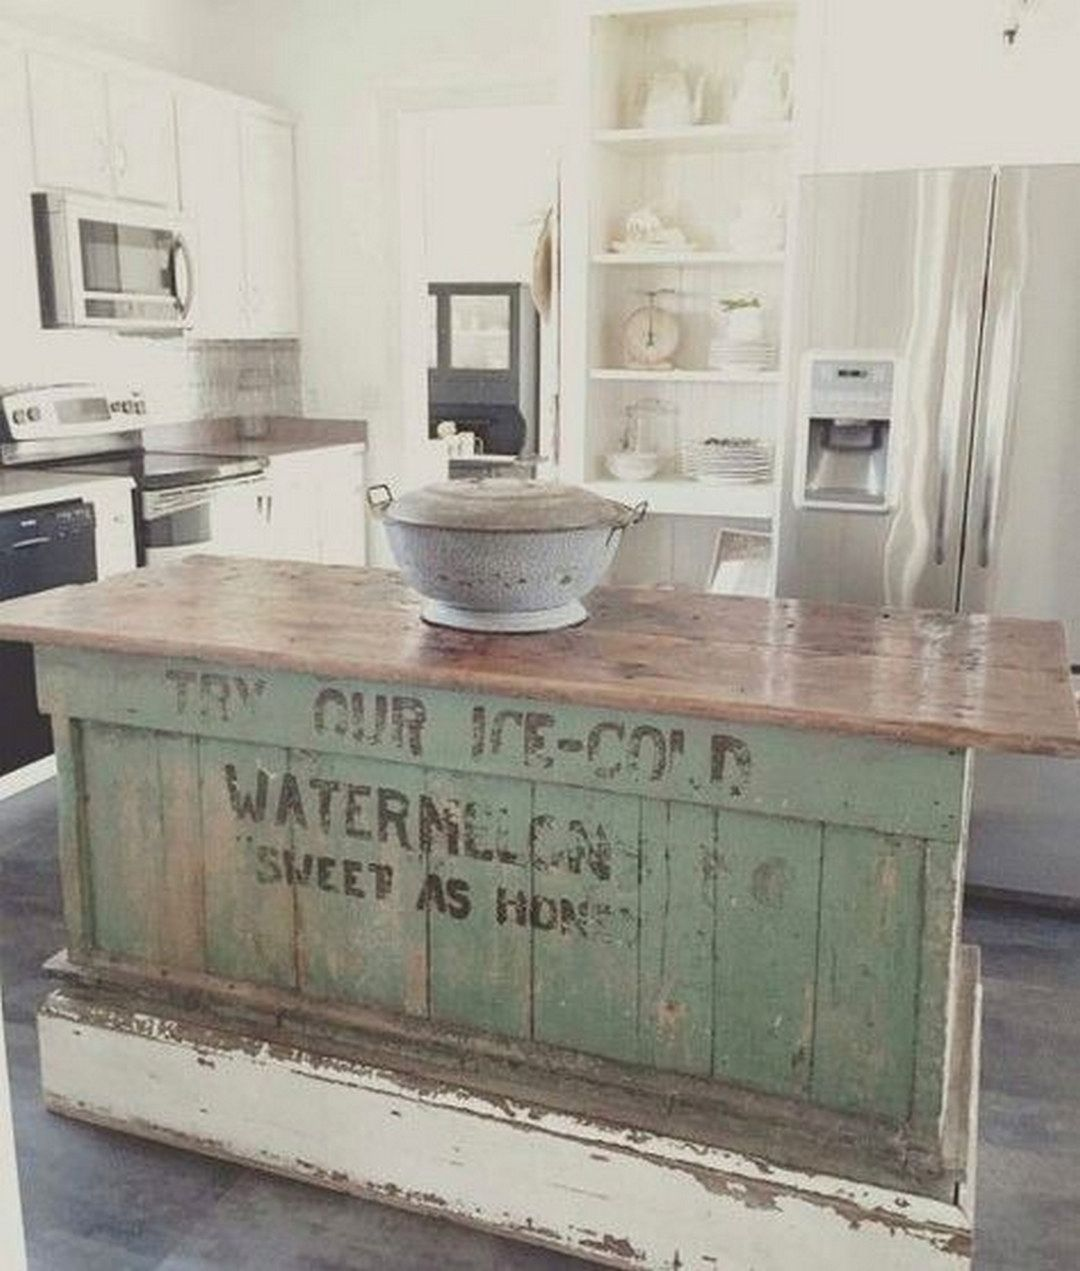 63 Marvelous Farmhouse Style Home Decor Ideas https://www ... on mexican style home kitchen ideas, pinterest decorating mantels with baskets, mexican style home decor ideas, kitchen decorating ideas, pinterest wall decor ideas, pinterest home decorating ideas, pinterest bathroom decor ideas, pinterest french country decor, pinterest shabby chic decorating, pinterest corrugated tin ideas, pinterest kitchen remodel, pinterest winter porch ideas, kitchen paint ideas, long kitchen ideas, pinterest country decor kitchen, distressed wood kitchen ideas, pinterest home projects, gray kitchen ideas, pinterest patio ideas home, pinterest wall decor kitchen,